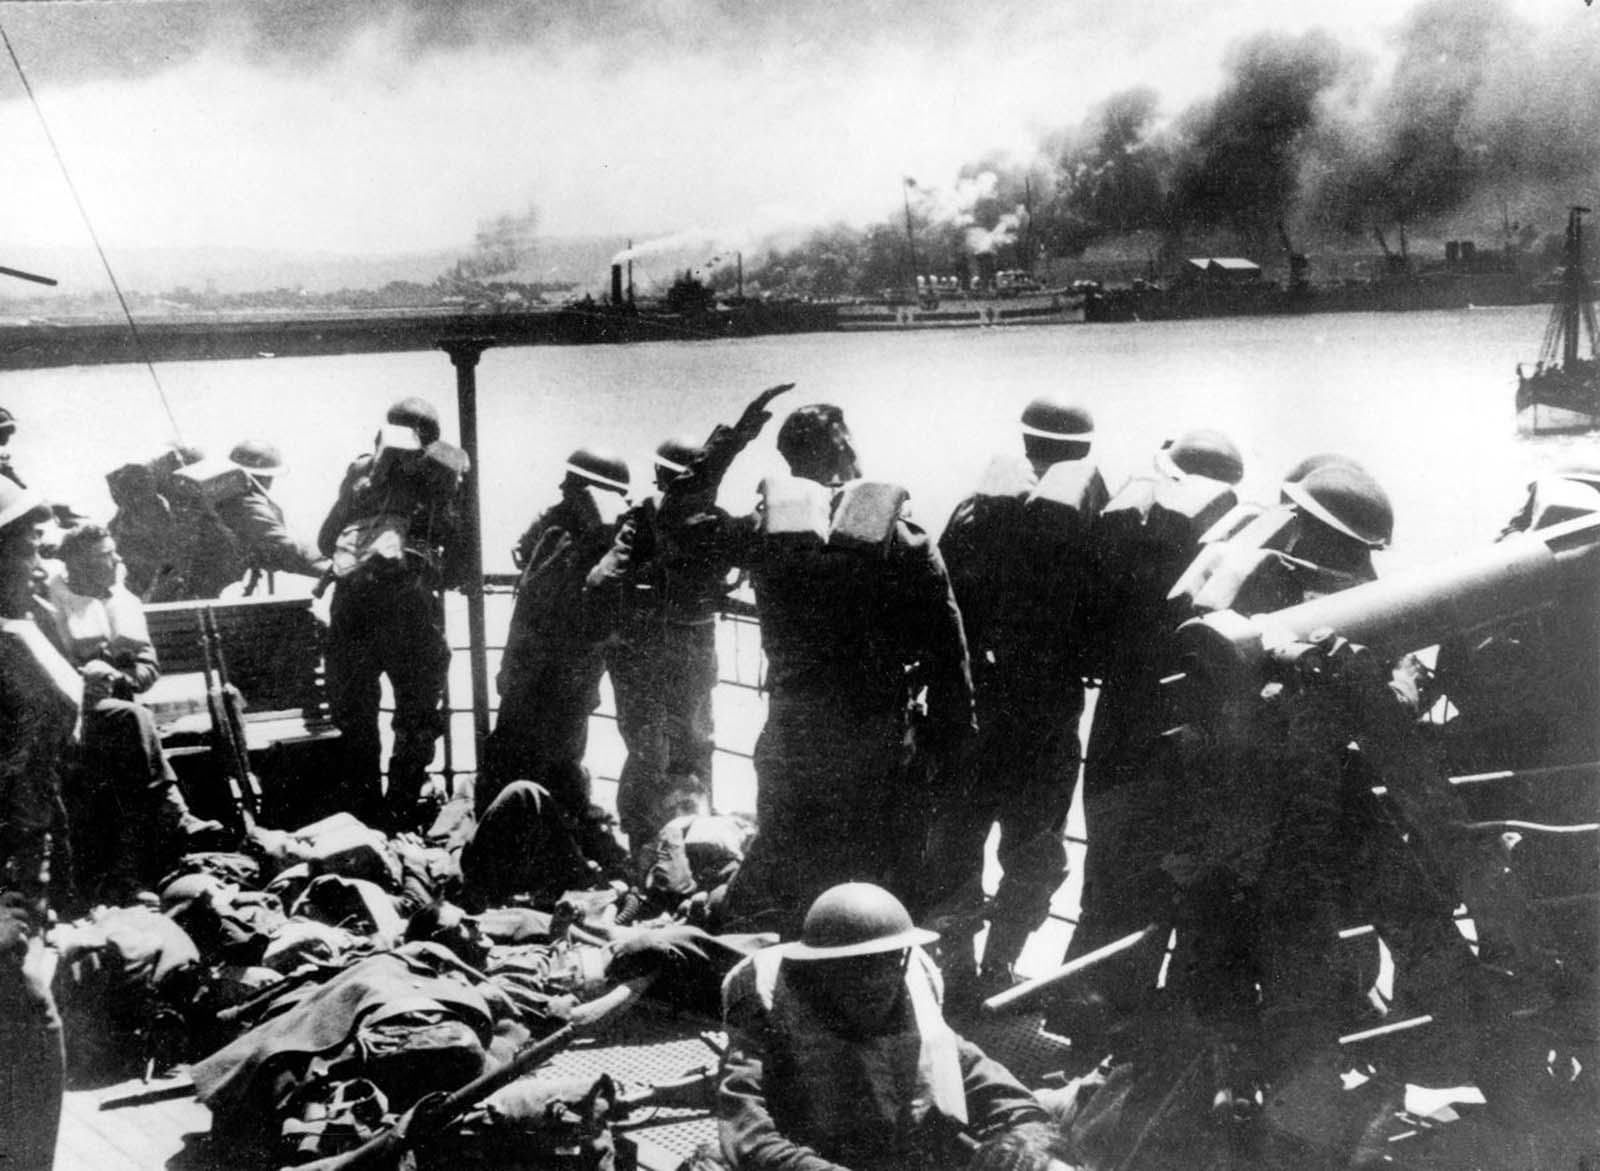 British Expeditionary Forces view the German bombardment of Dunkirk from an evacuation transport.